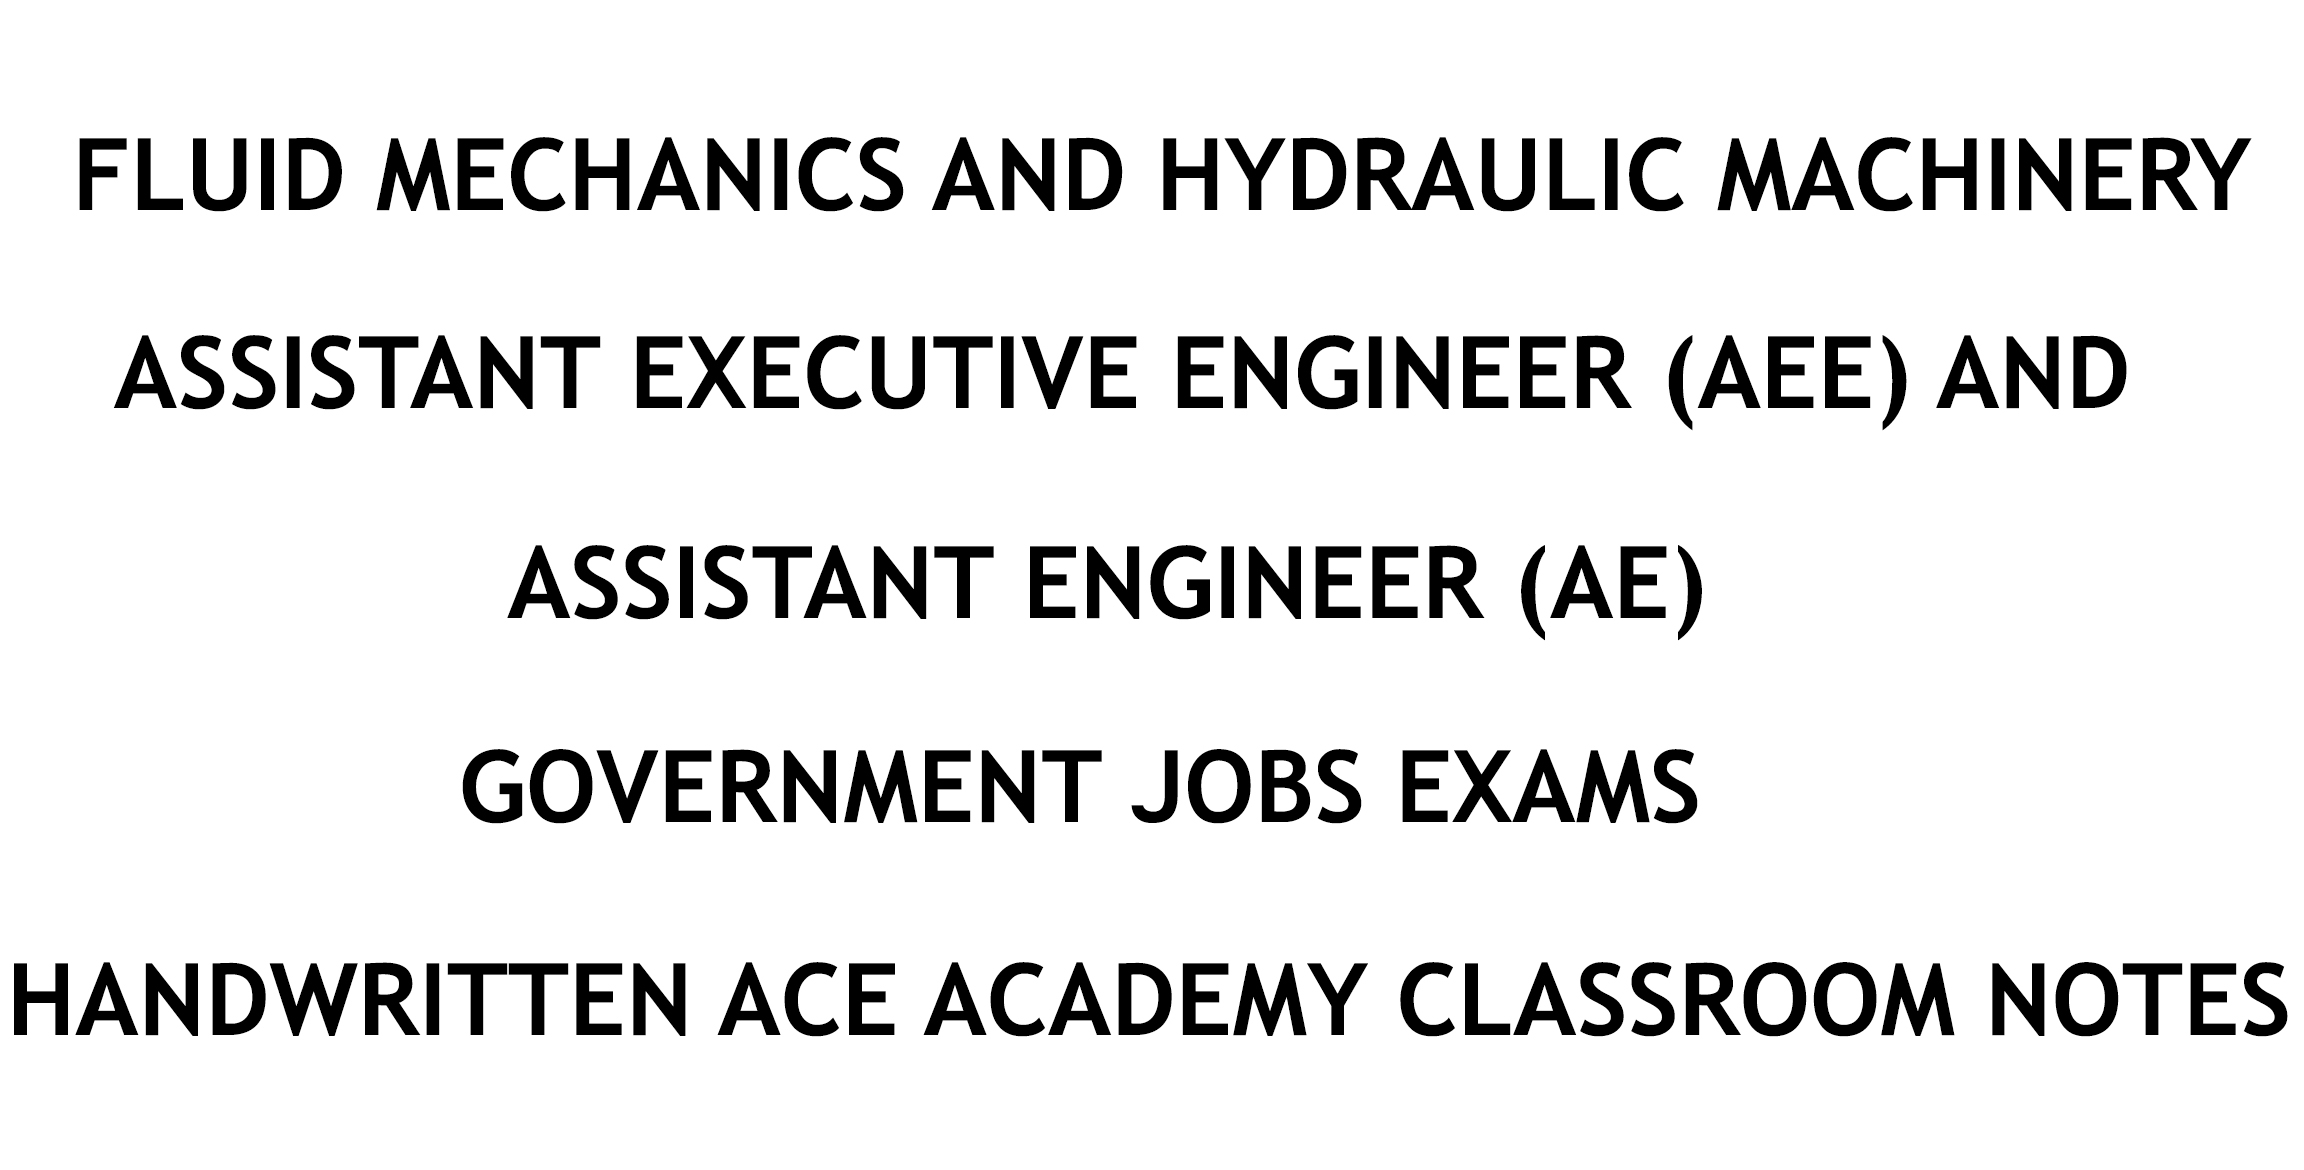 Fluid Mechanics and Hydraulic Machinery AE AEE Ace